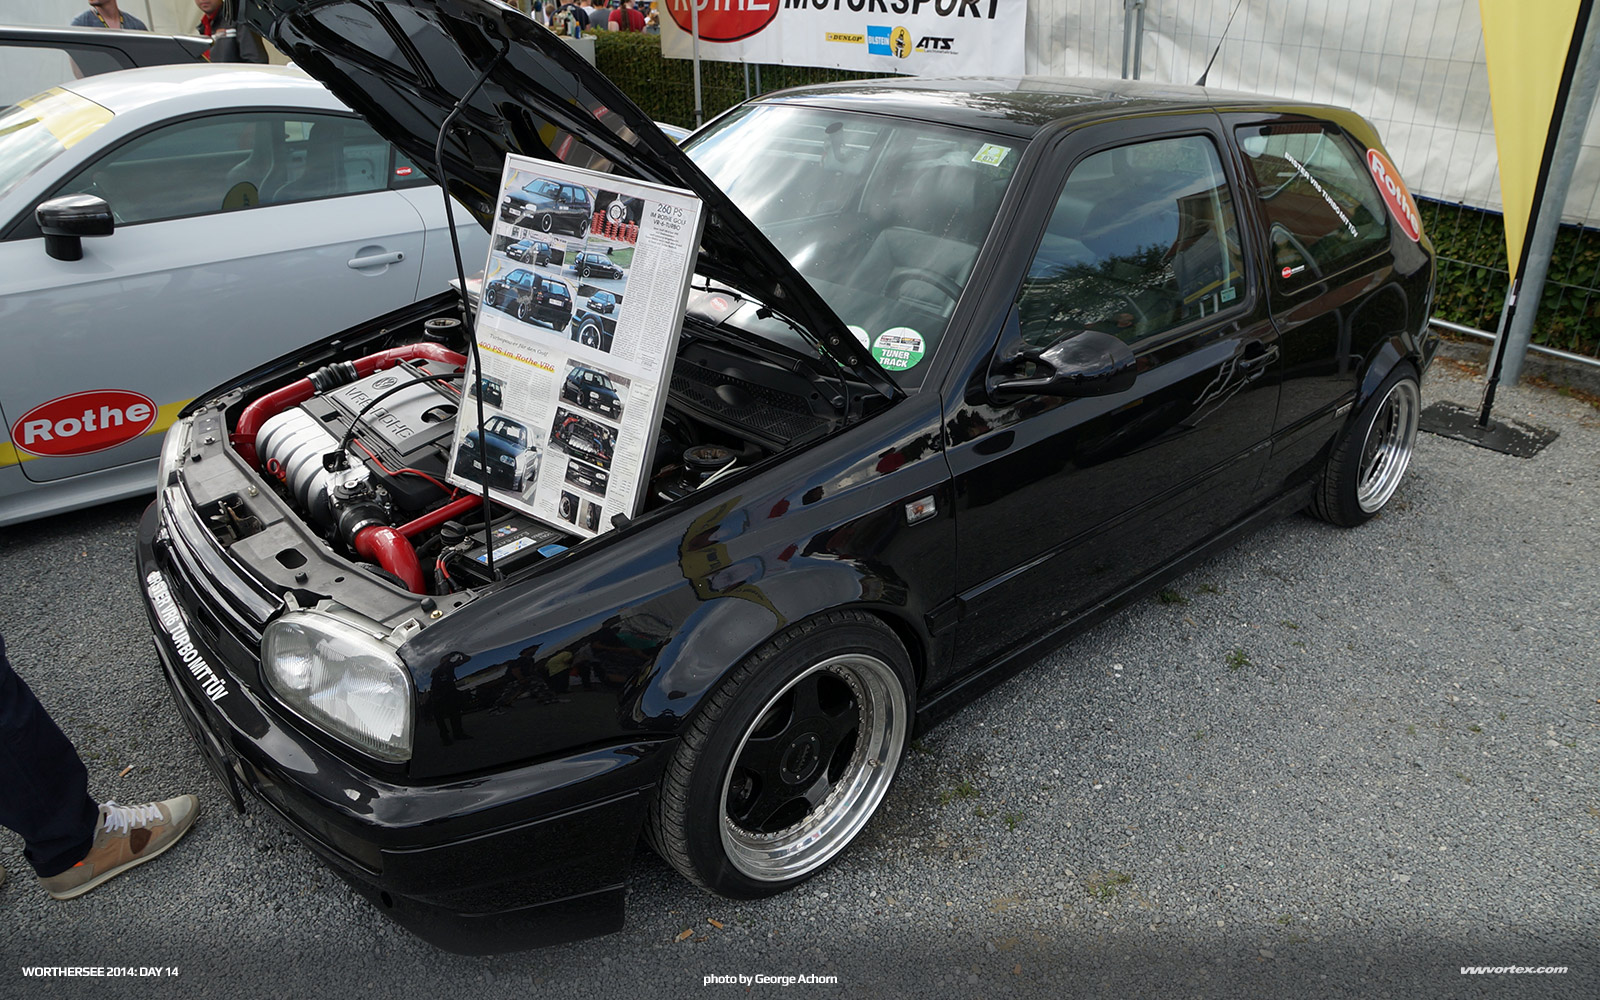 2014-Worthersee-Day-14-VWvortex-1268